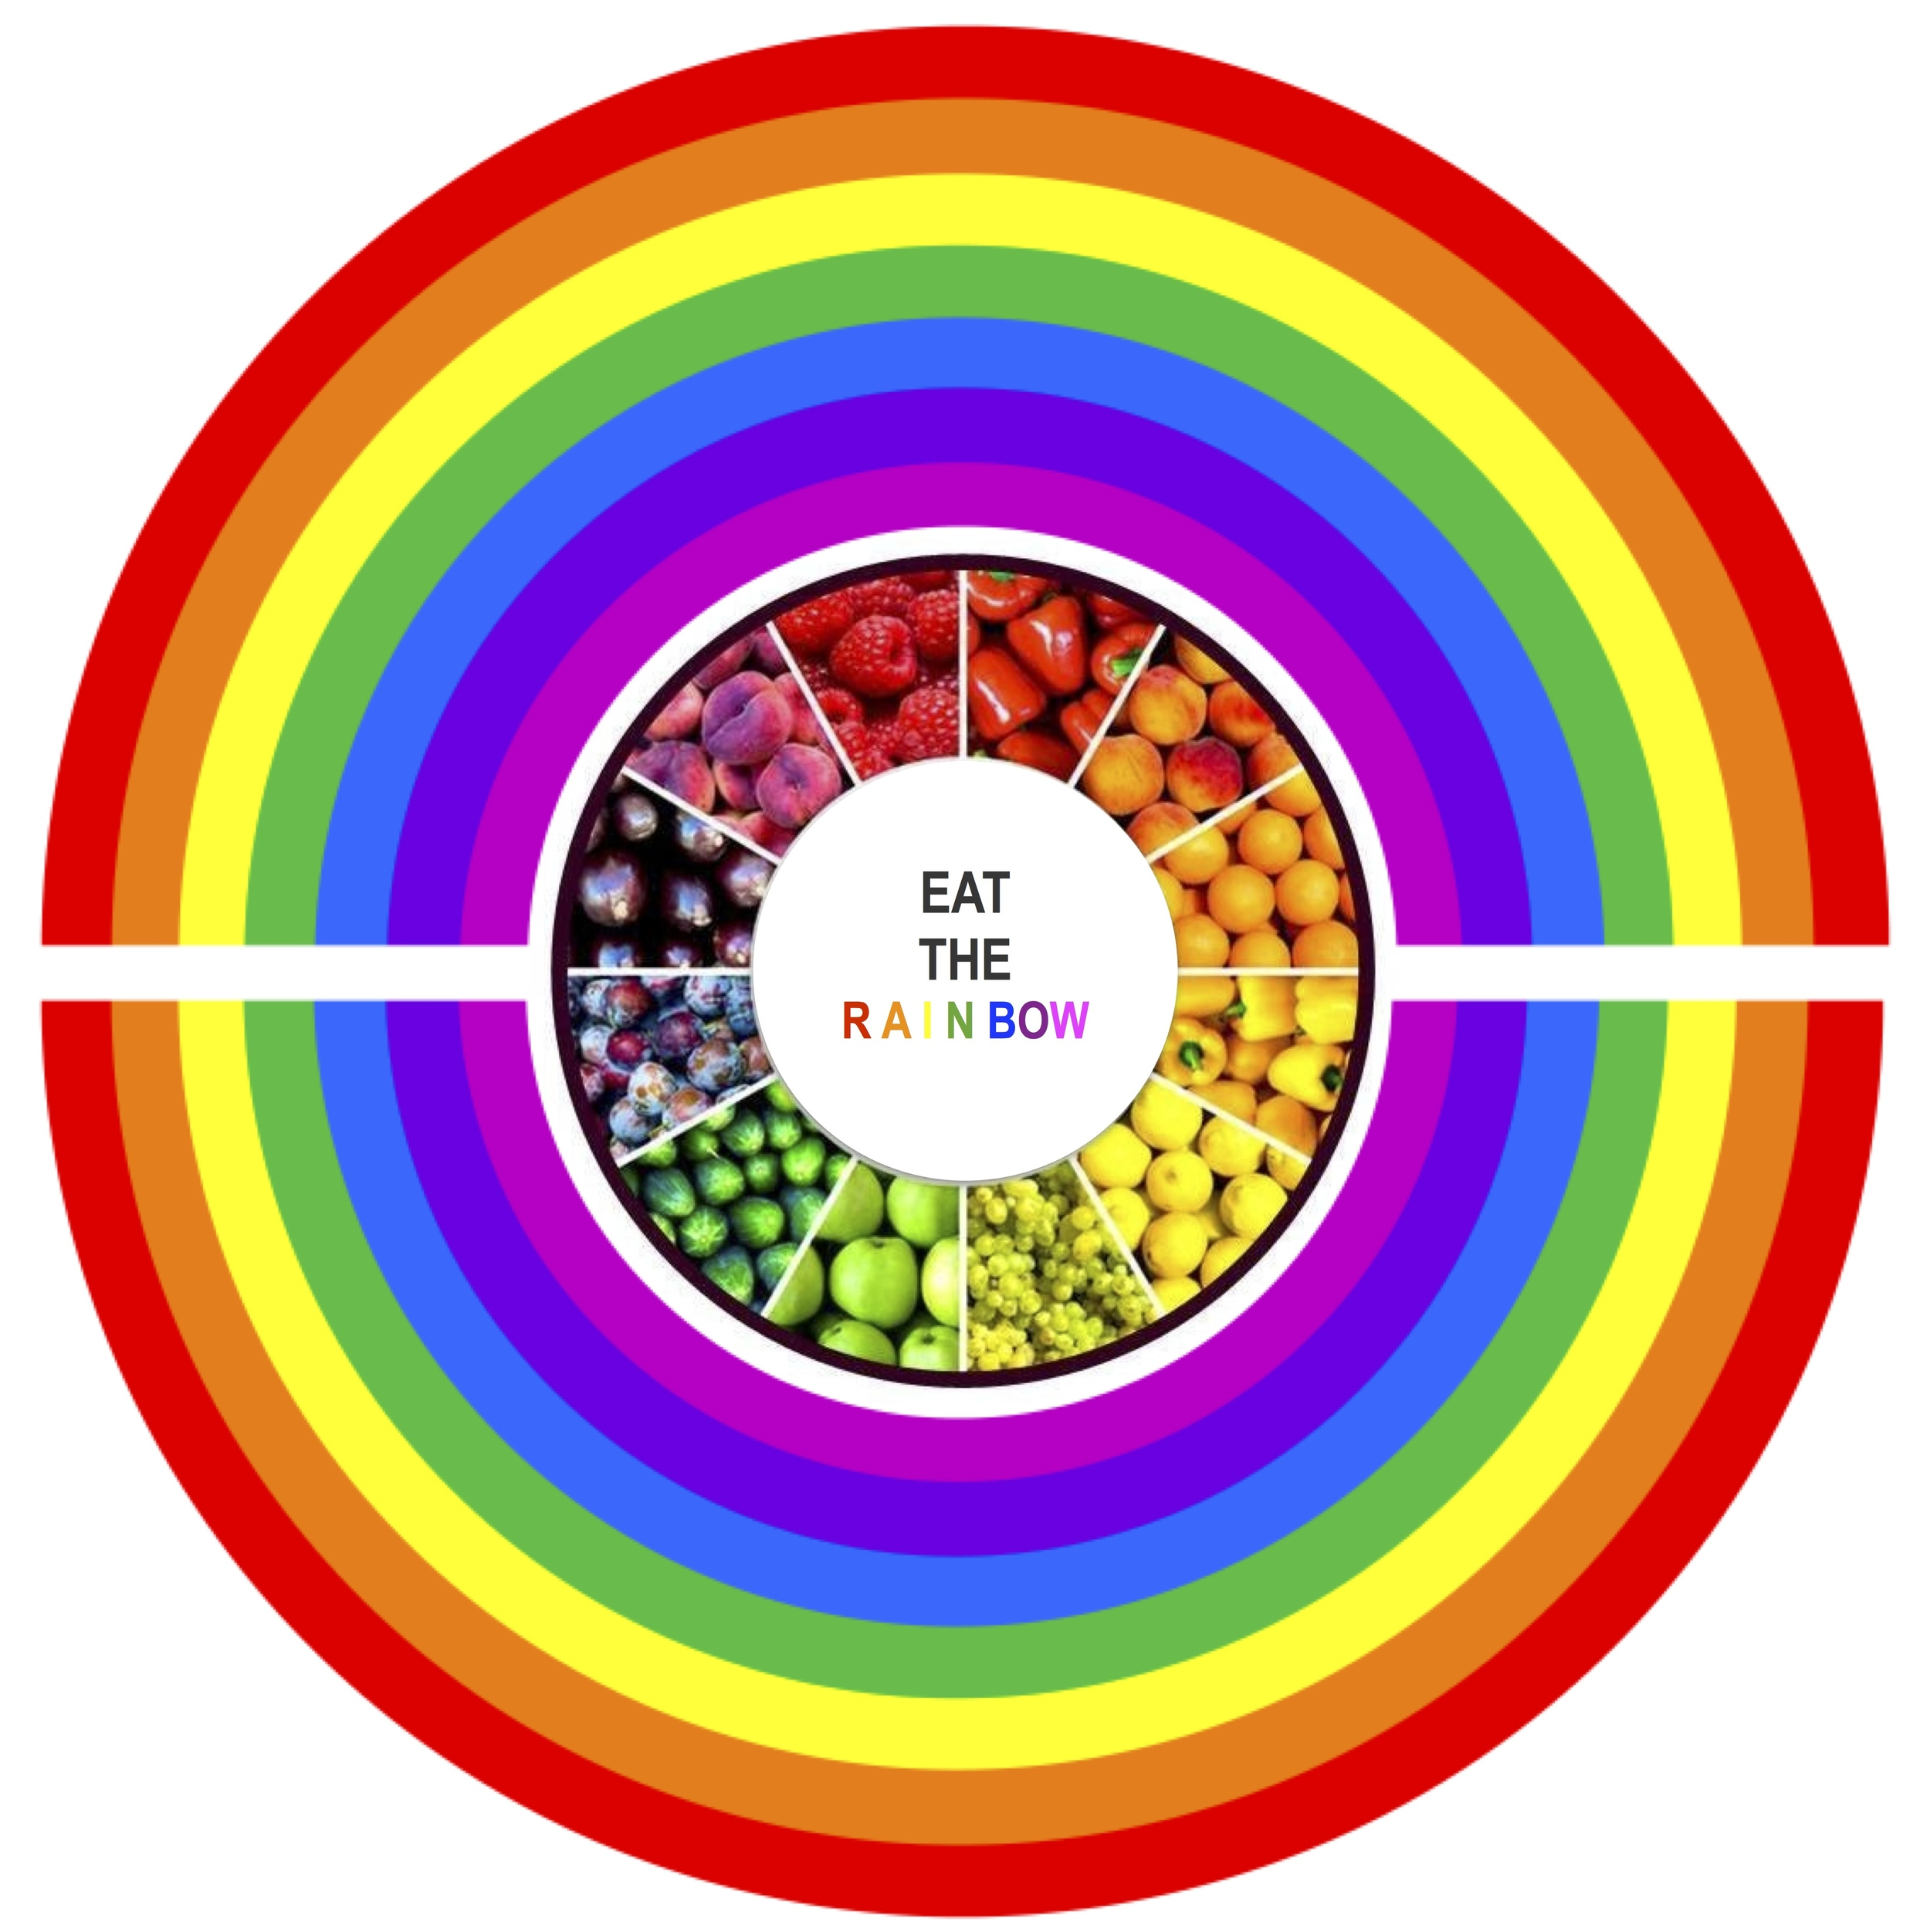 EatTheRainbowPic.pages copy 2.jpg